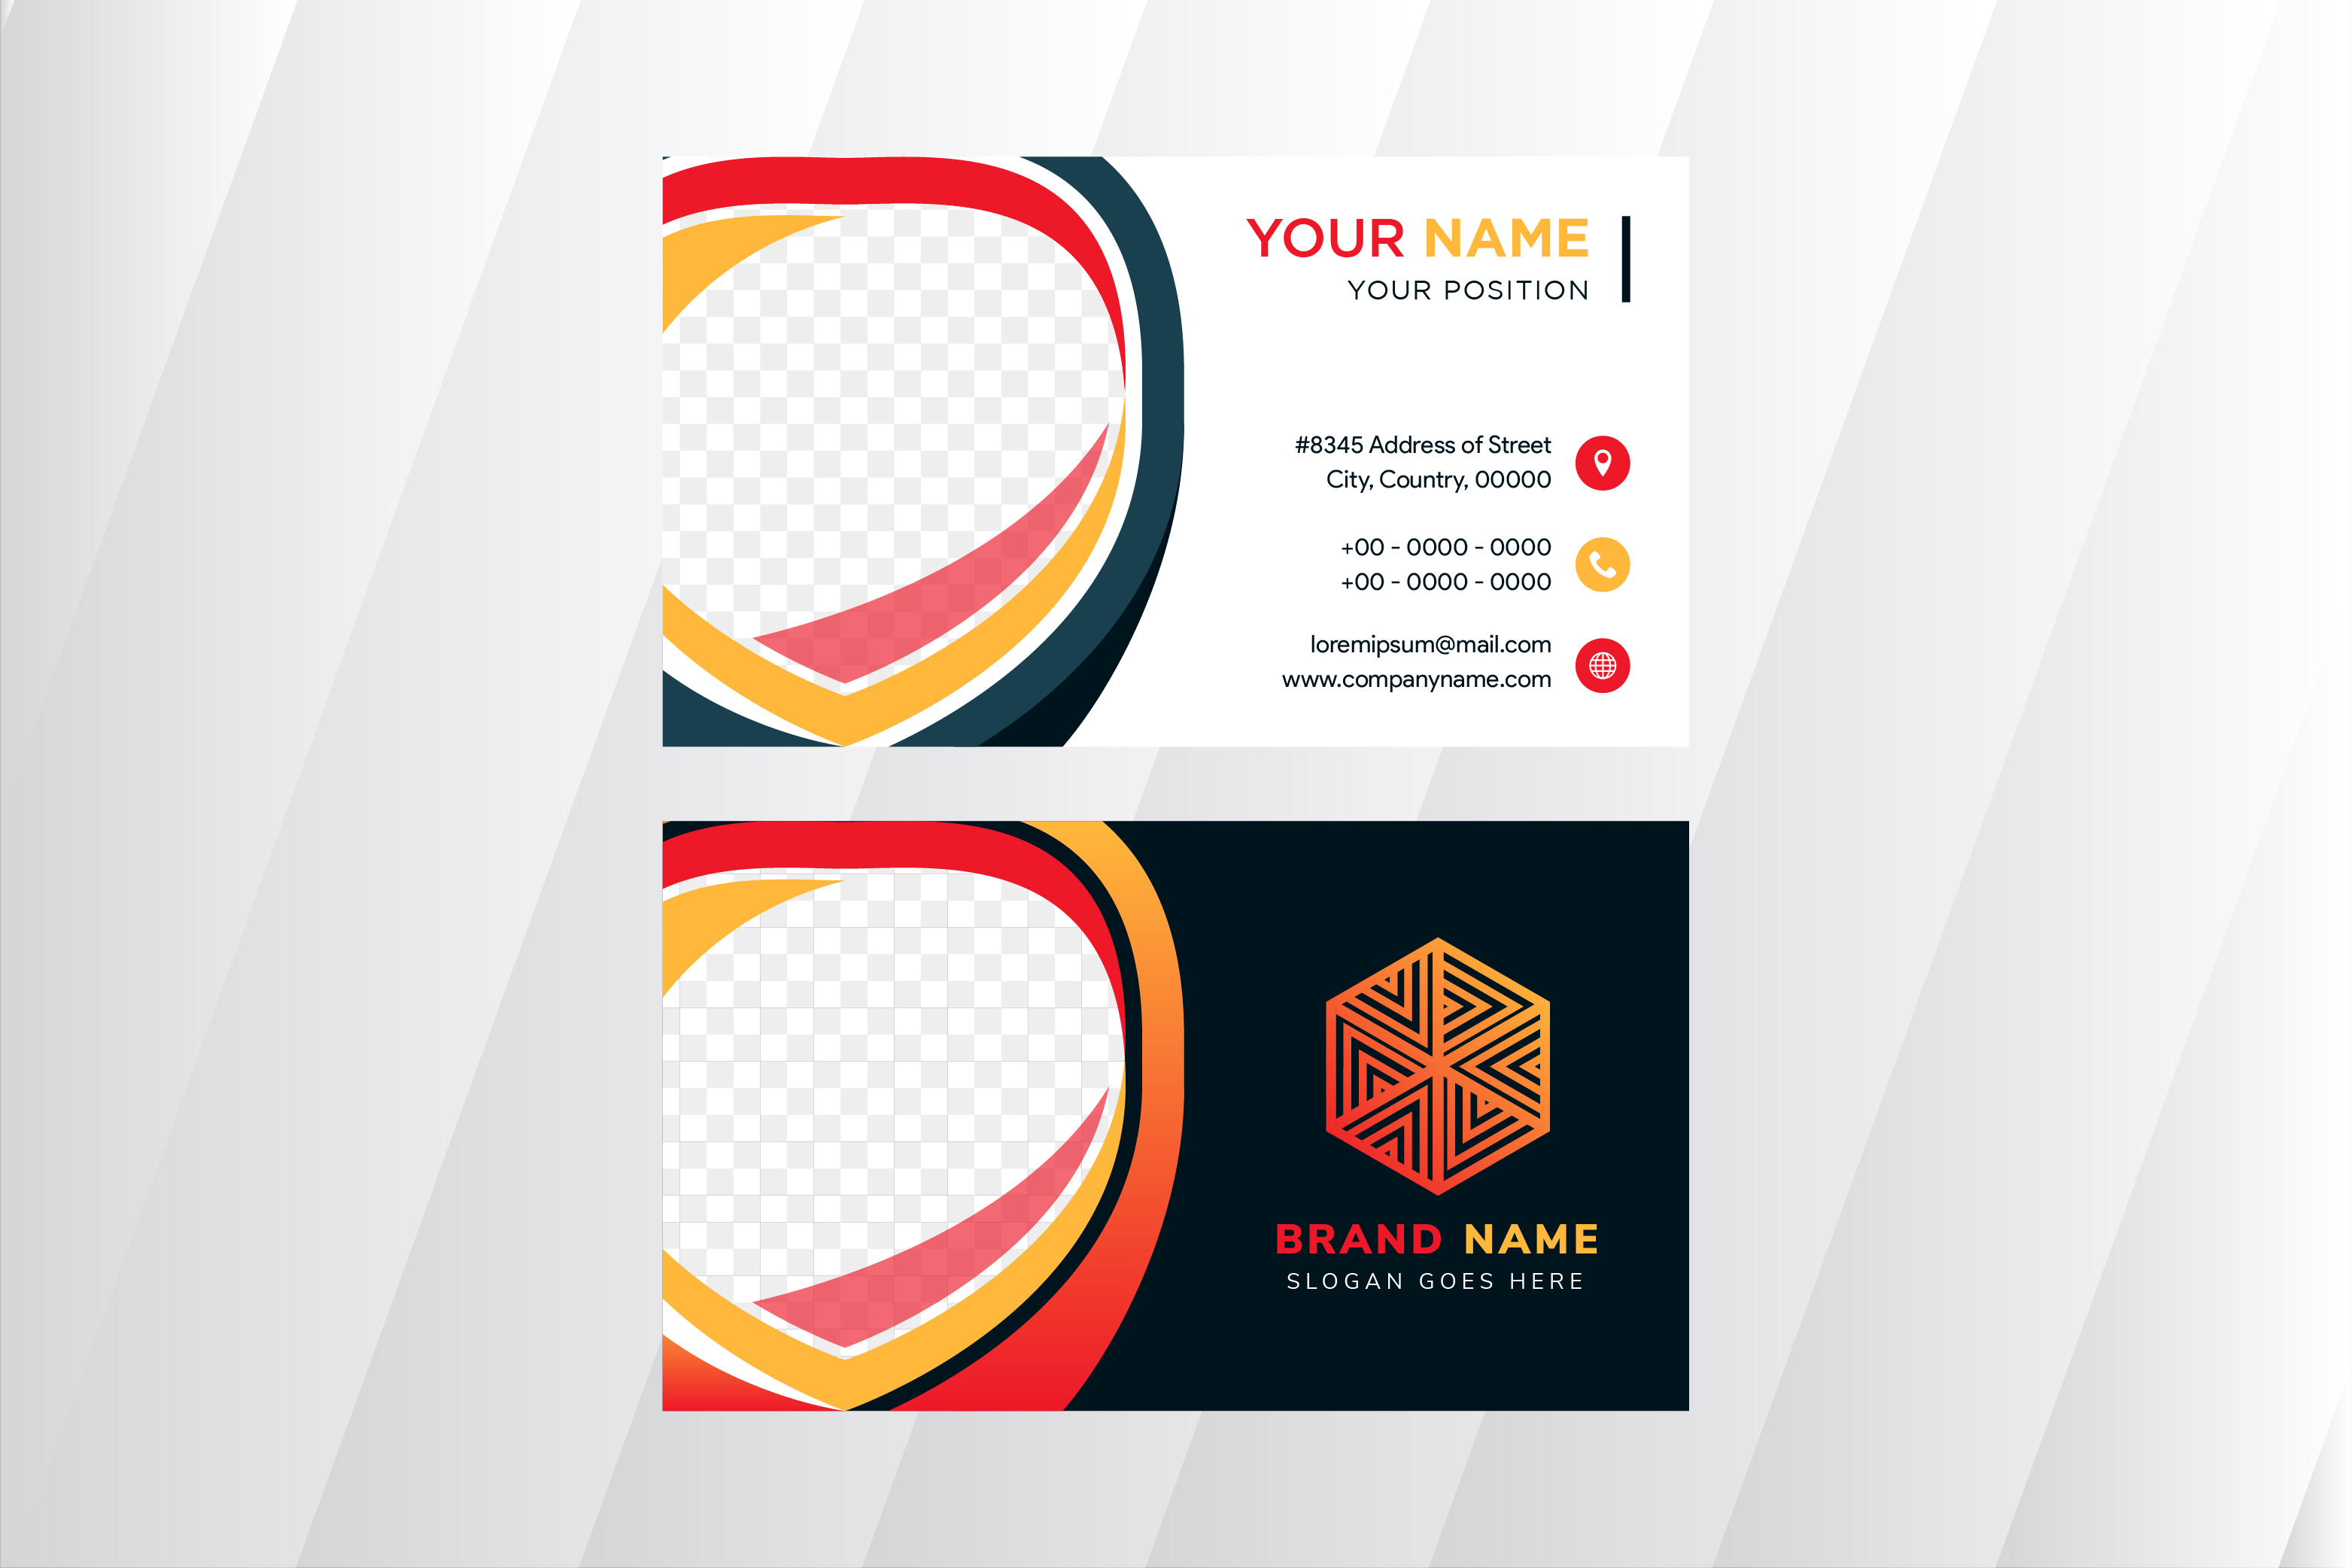 Design Graphic Resources Design Visiting Card Background Free Svg Cut Files Create Your Diy Projects Using Your Cricut Explore Silhouette And More The Free Cut Files Include Svg Dxf Eps And